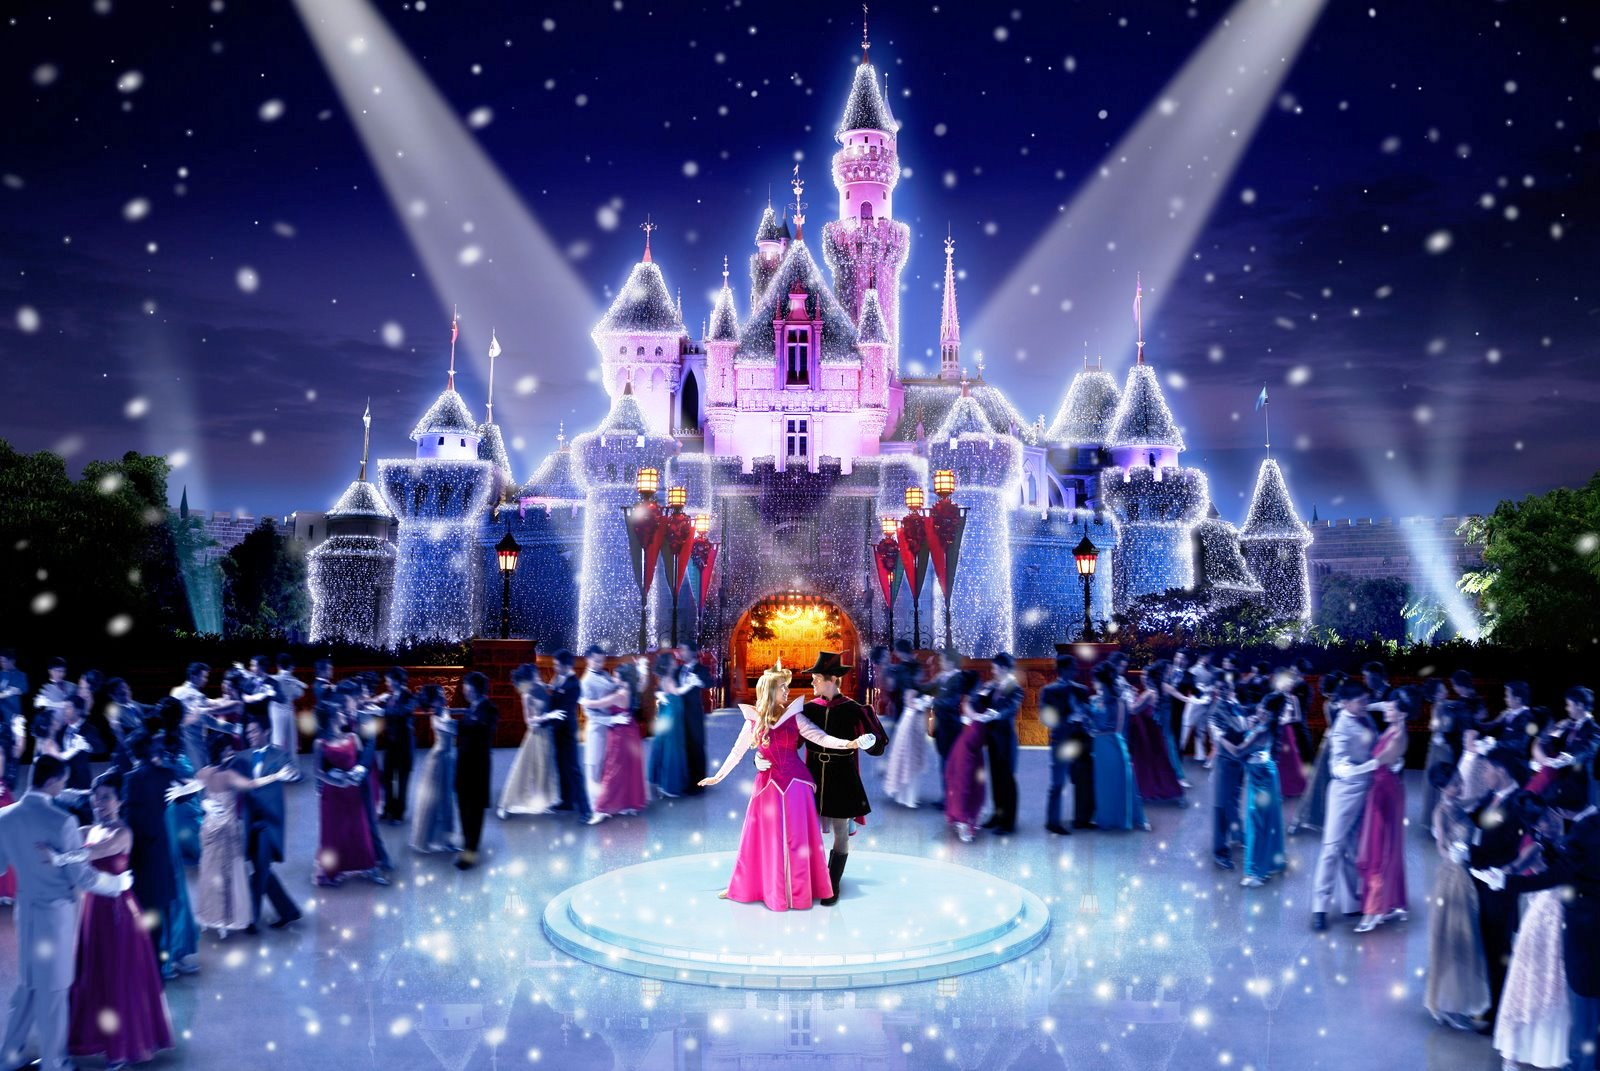 Christmas In Disneyland Hong Kong.Royal Christmas Ball Disney Wiki Fandom Powered By Wikia